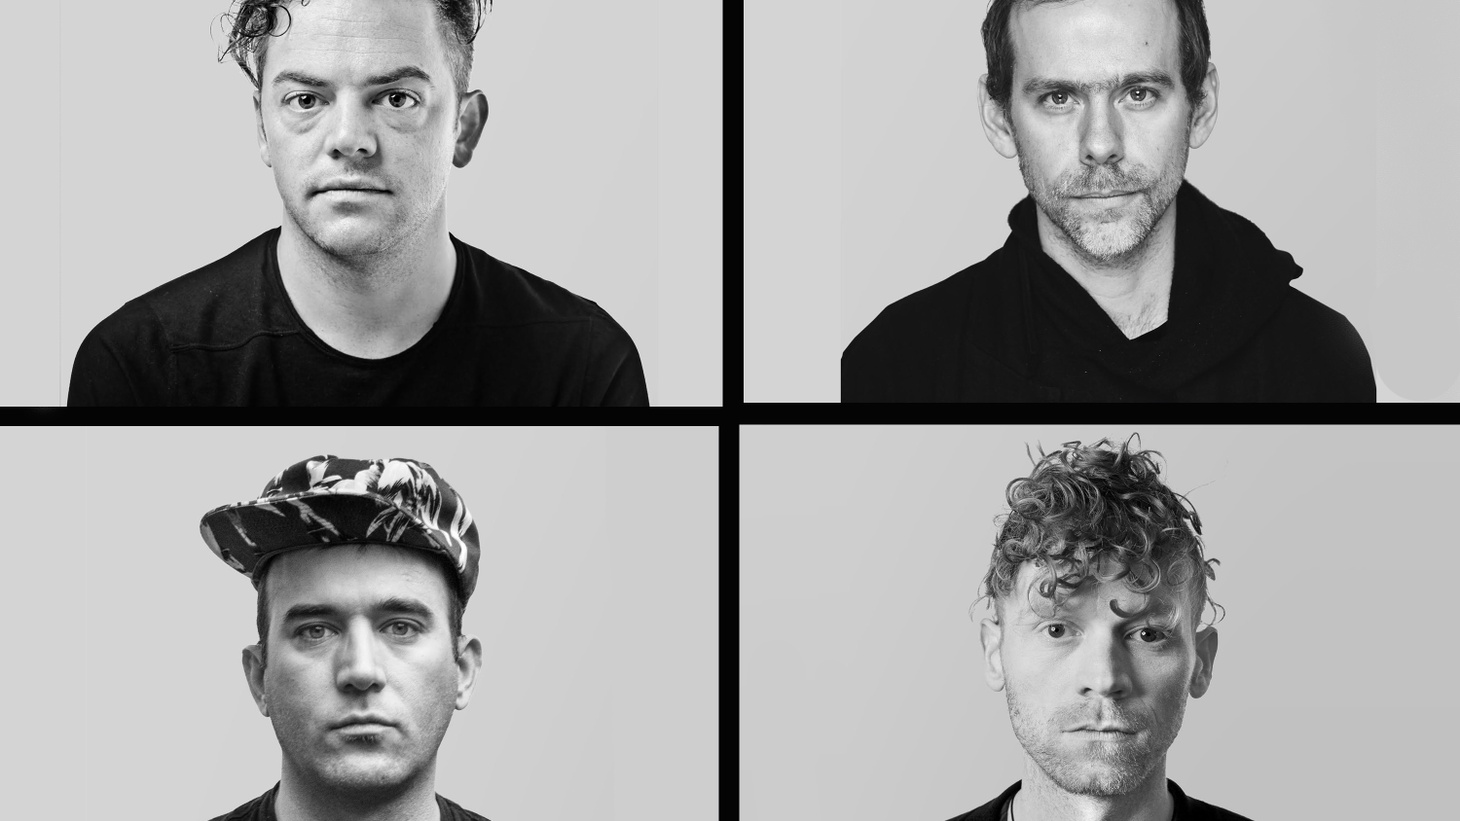 Sufjan Stevens, Bryce Dessner of the National, film composer Nico Muhly and drummer/multi-instrumentalist James McAllister explore the cosmos as Planetarium with a suite's worth of songs inspired by the Milky Way.